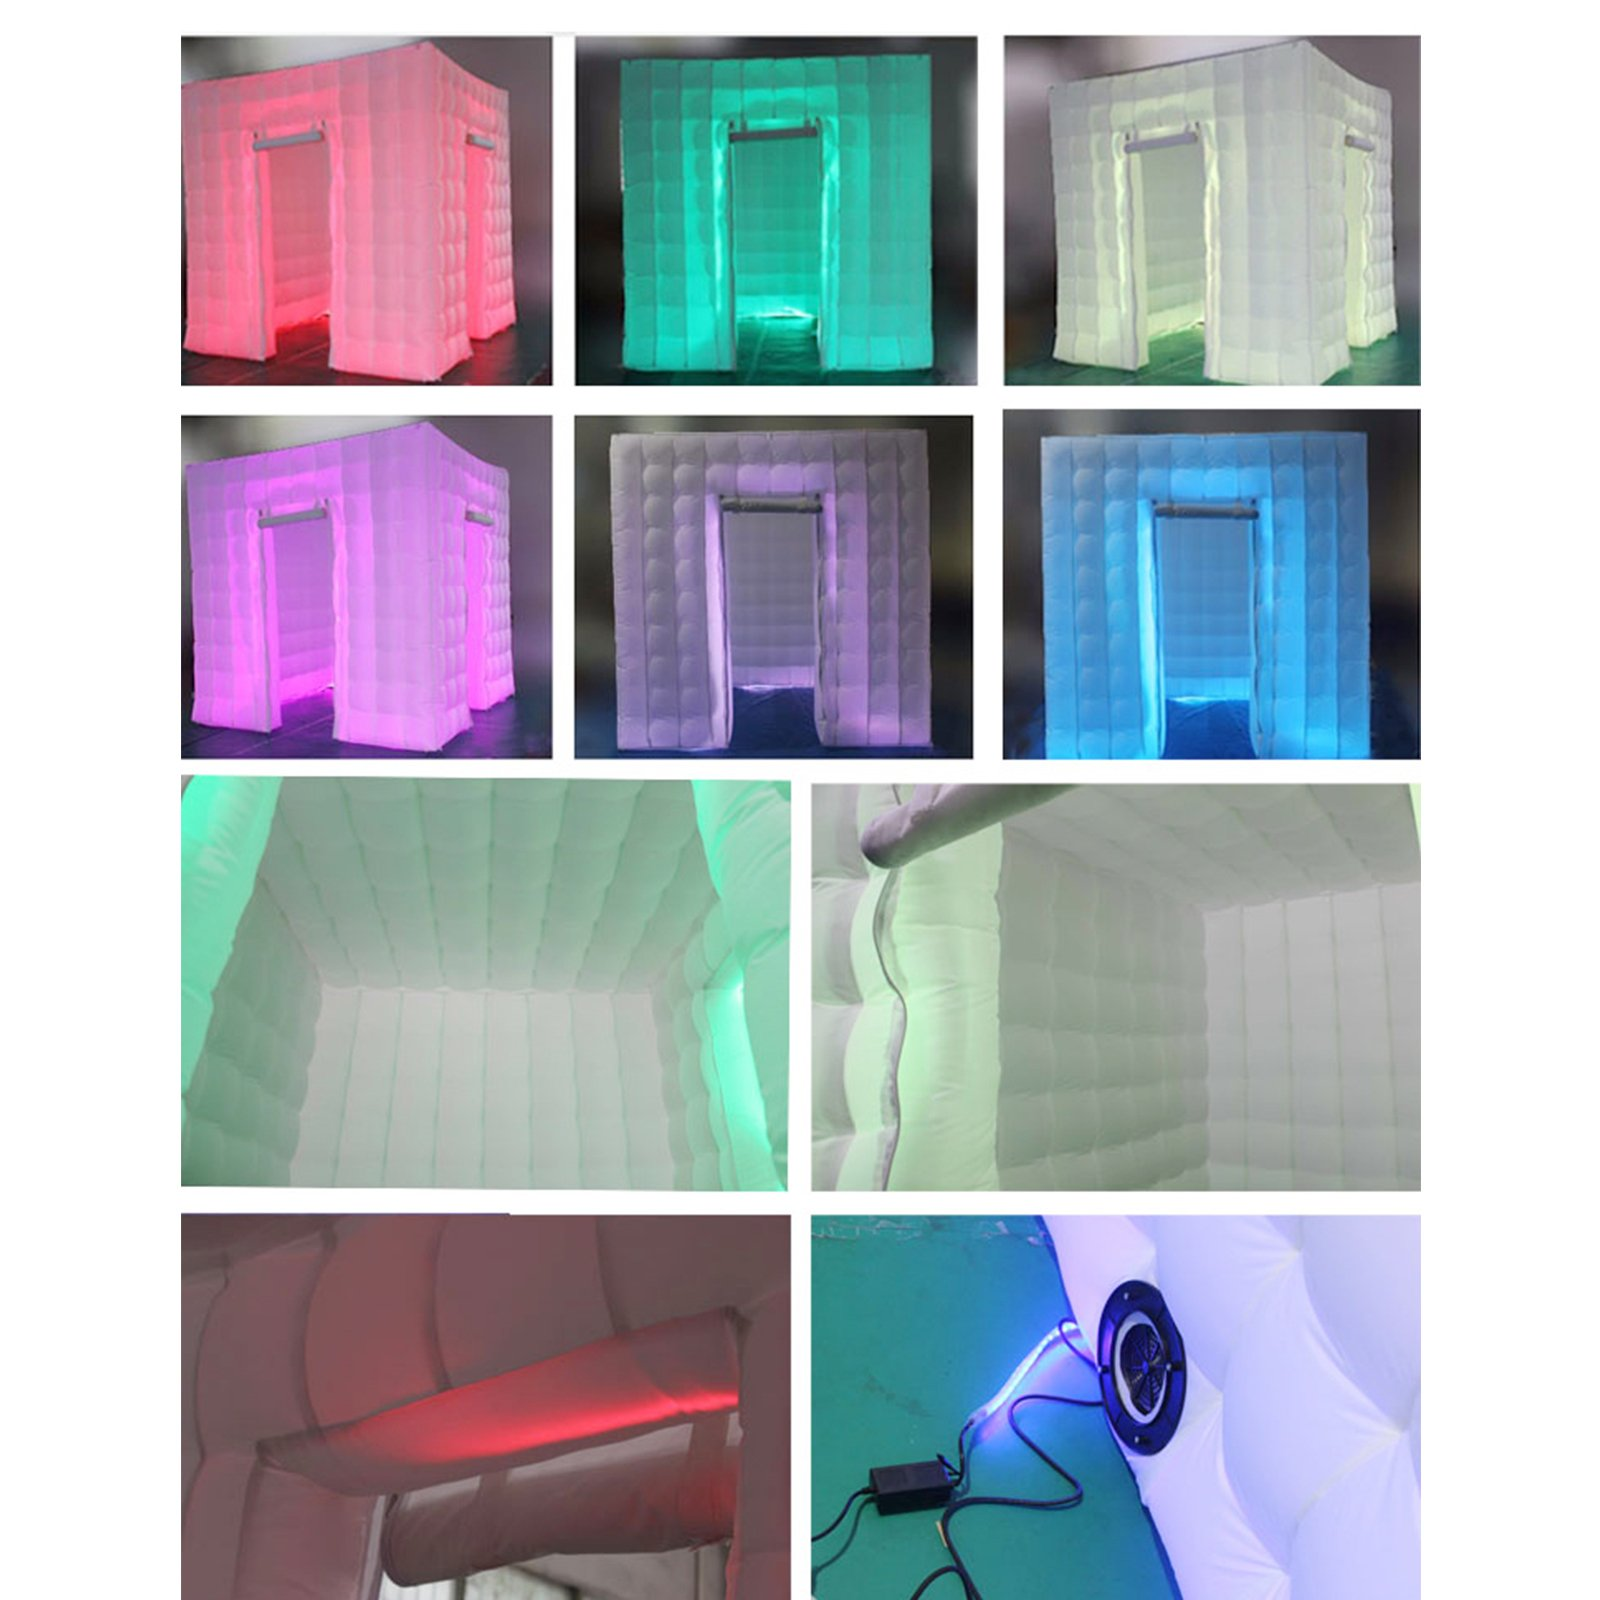 Happybuy 8.2X 8.2ft Inflatable Portable LED Lights Photo Booth 2 Doors W/Fan 110V US Plug by Happybuy (Image #4)